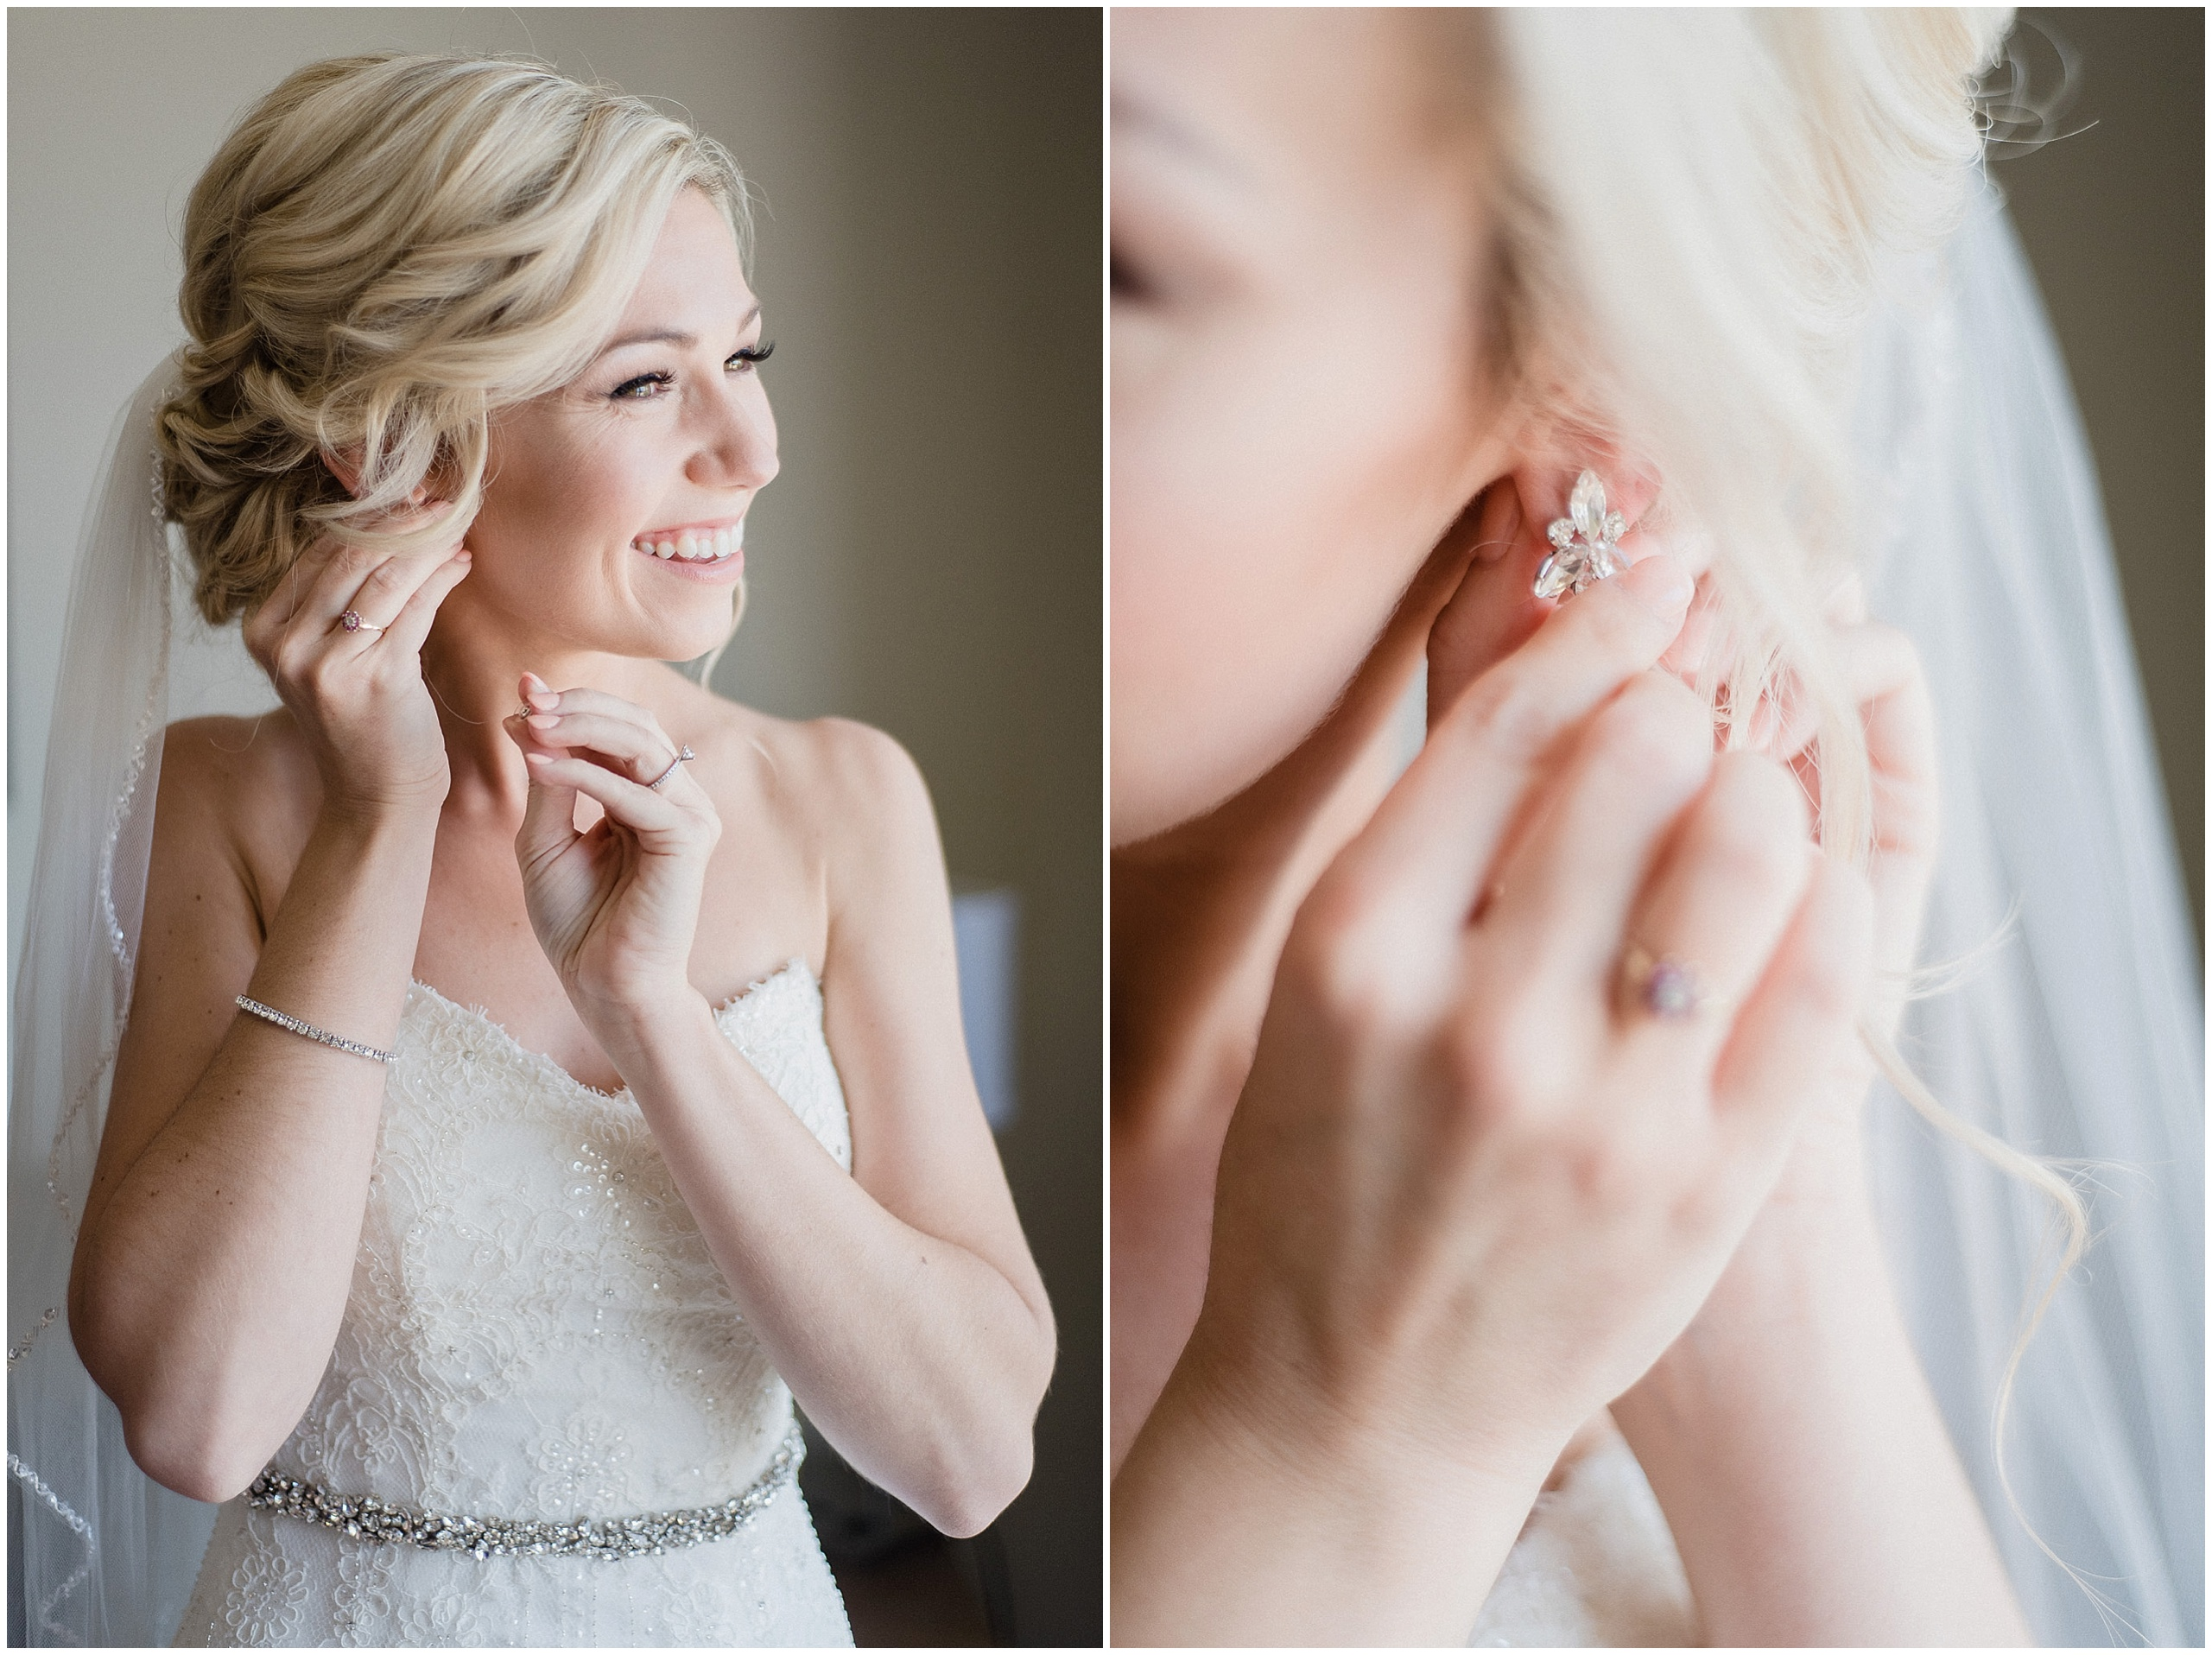 Beautiful bride putting earrings on, photographed by Jenn Kavanagh Photography